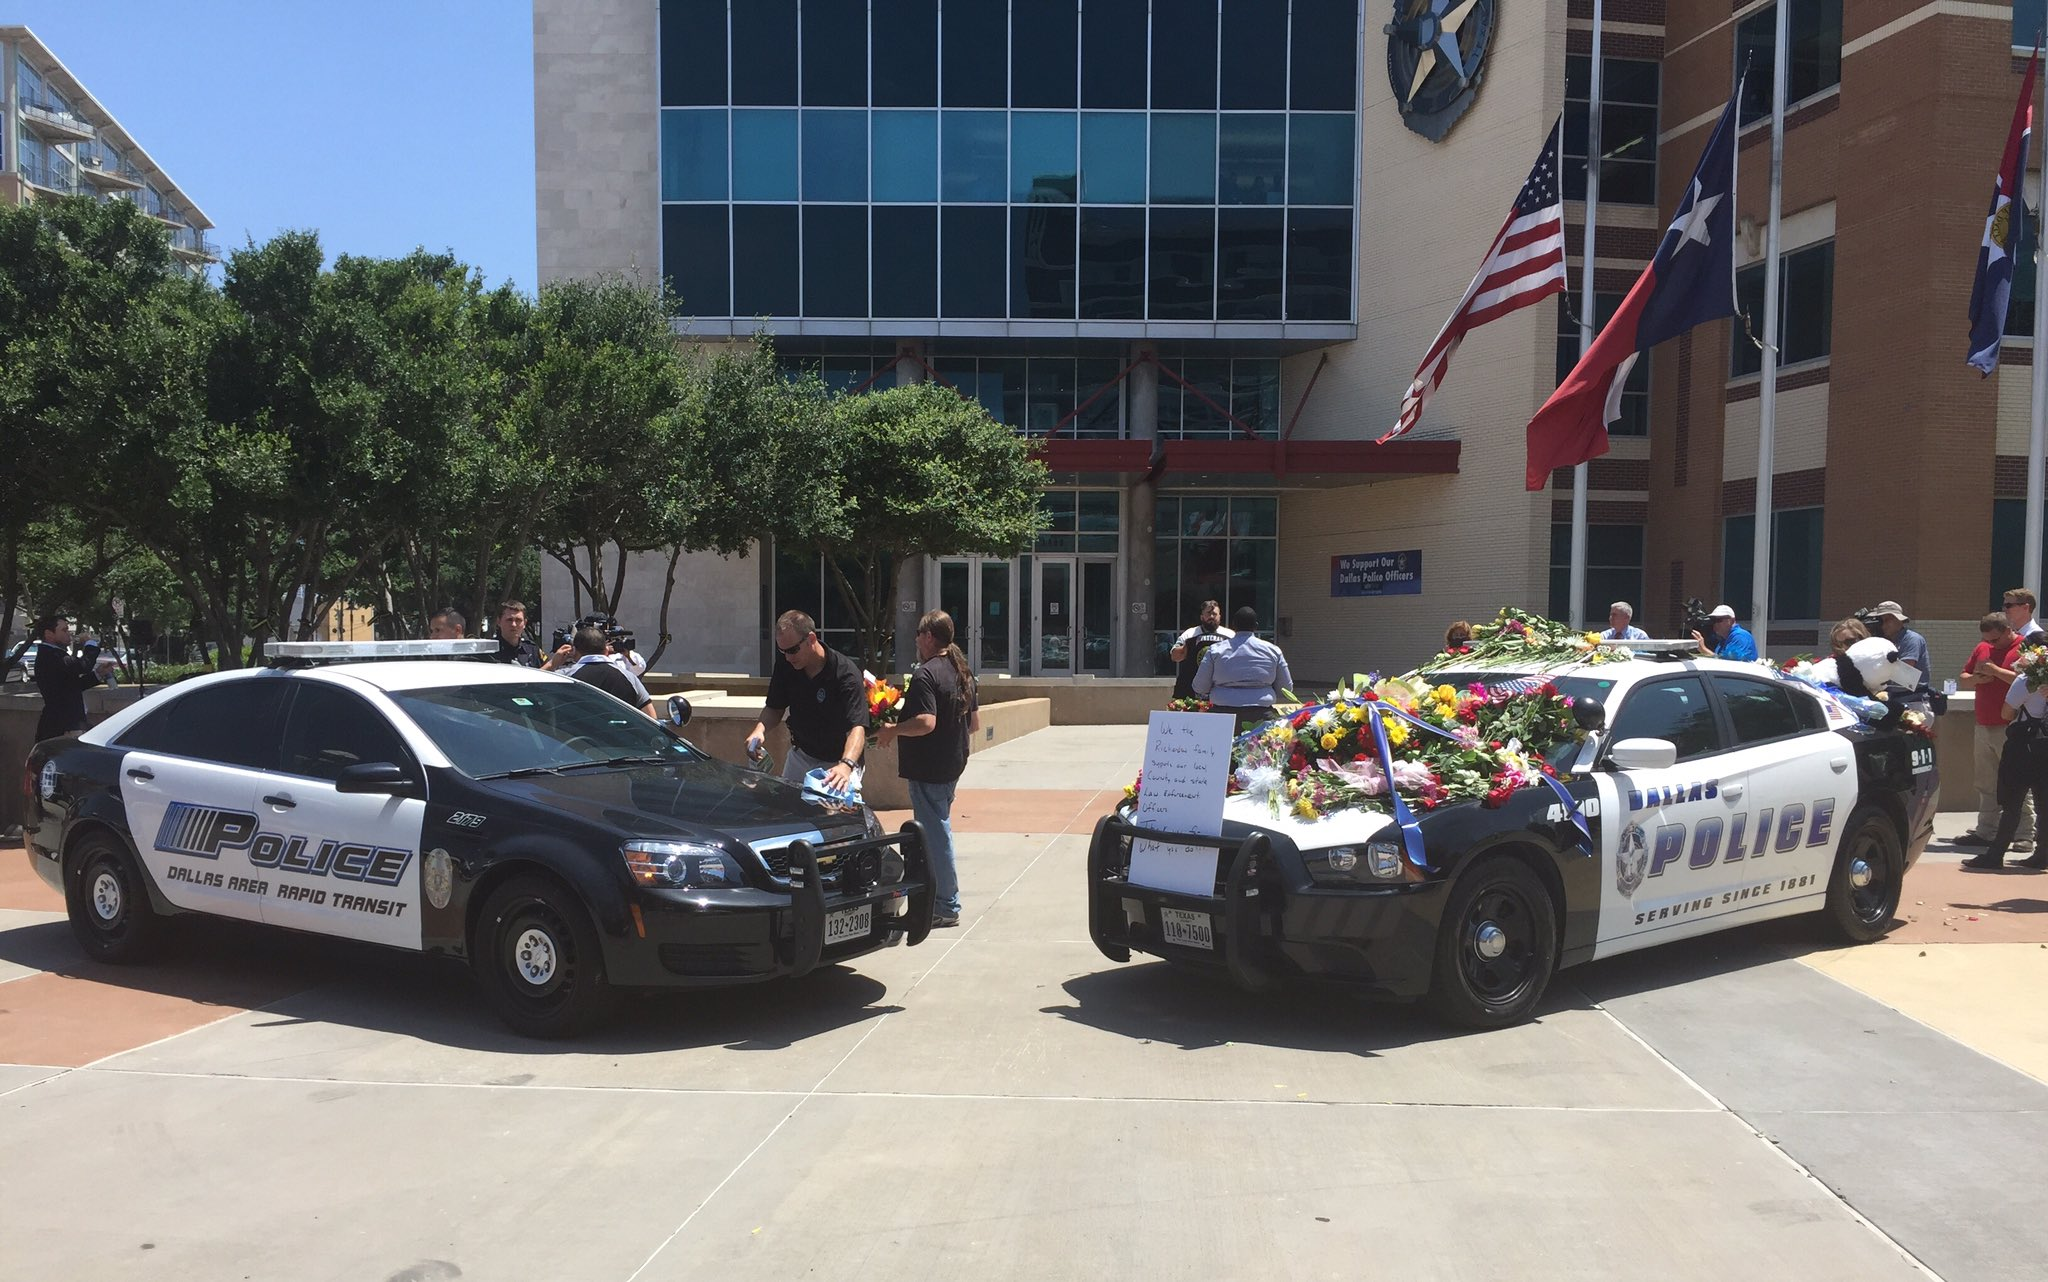 Two squad cars have been set up as #memorial in front of #DallasPolice HQ & @dartmedia. #PrayForDallas #PrayForDart https://t.co/VYDXlcQ1I8